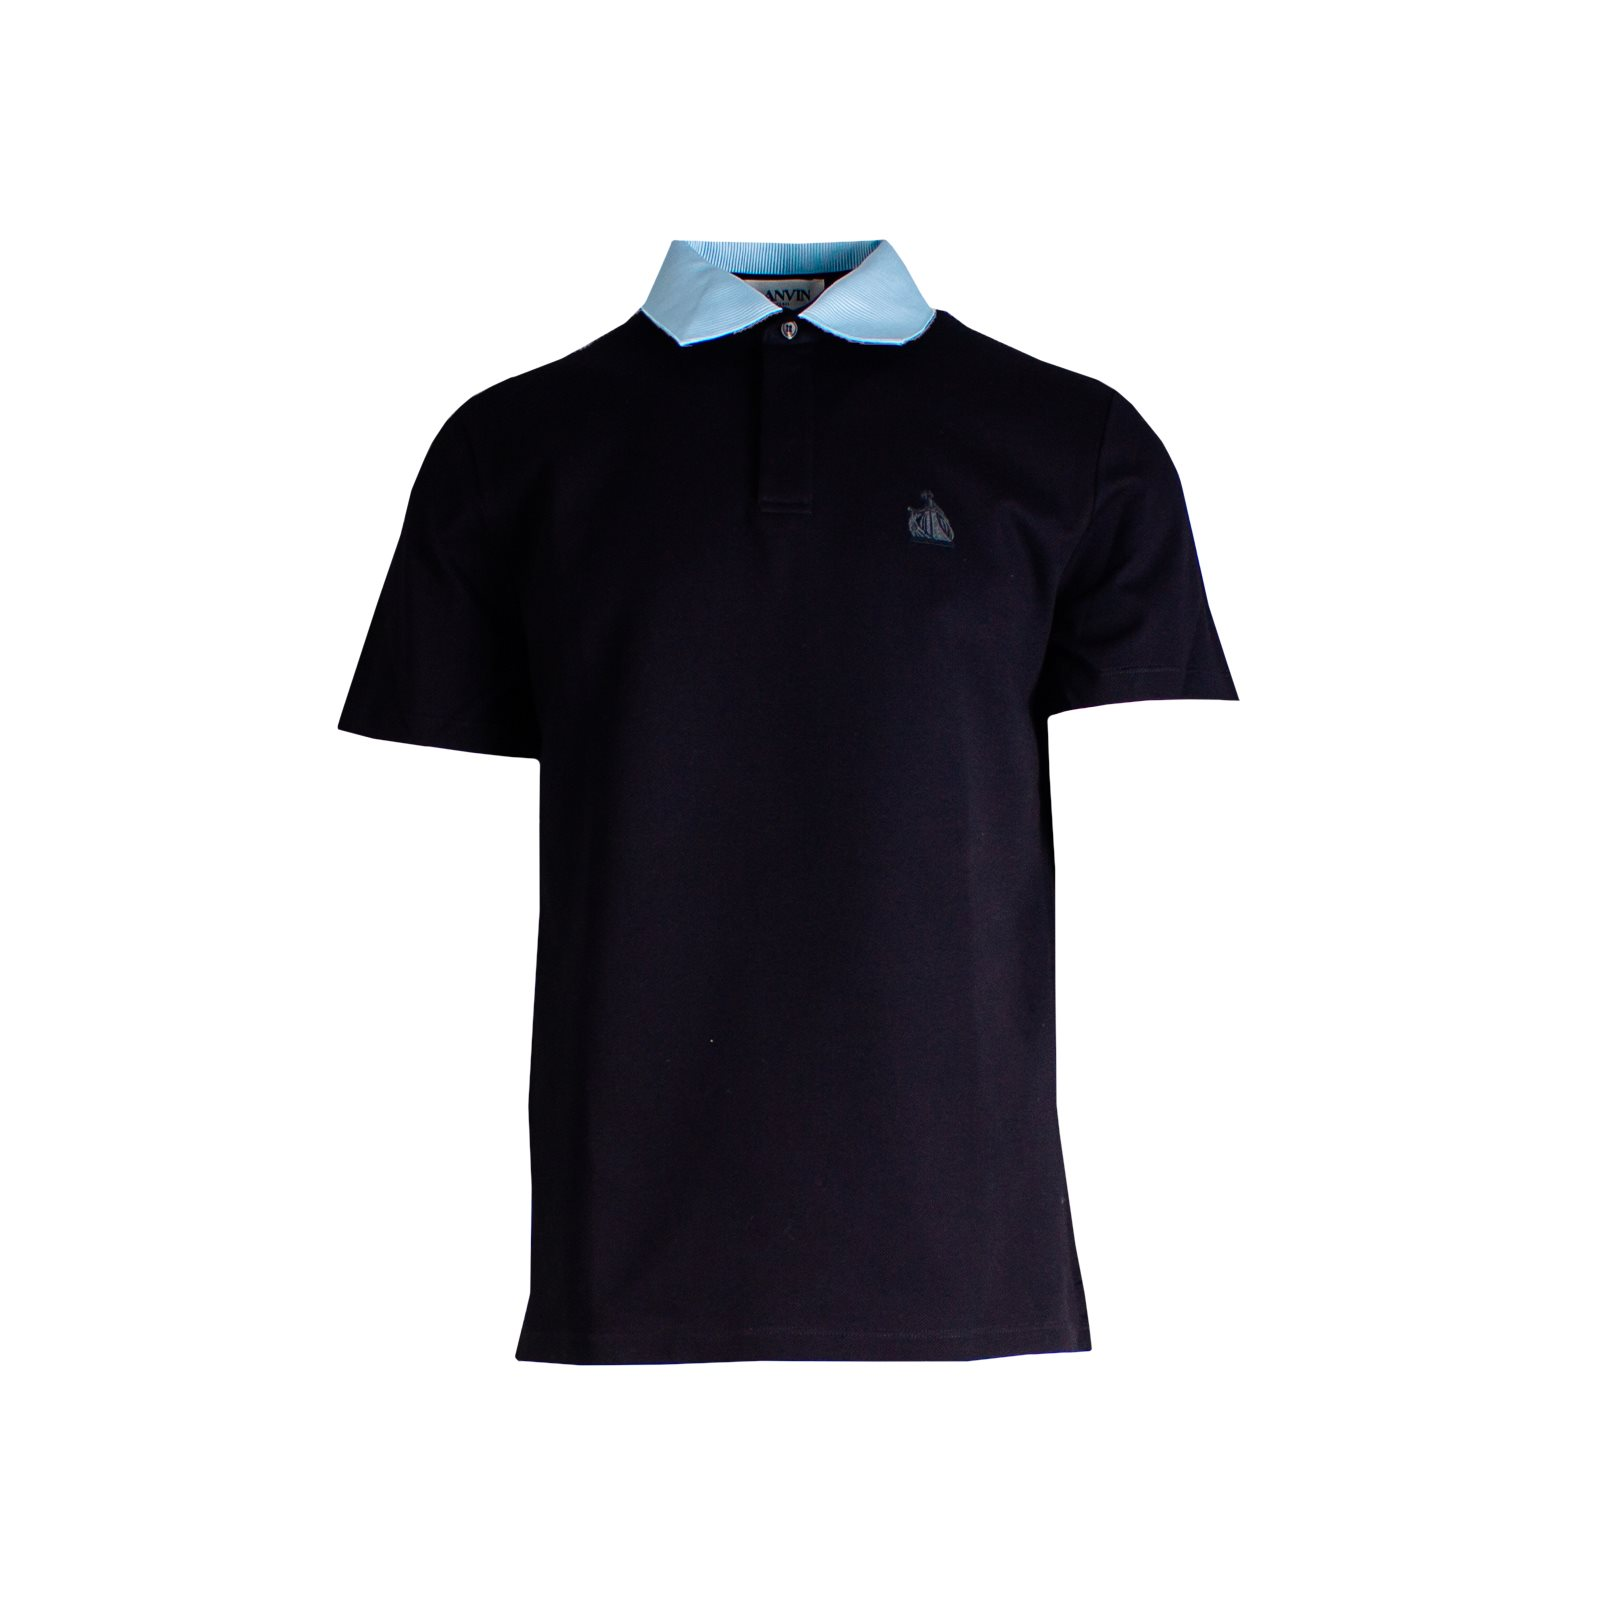 Lanvin Paris Polo